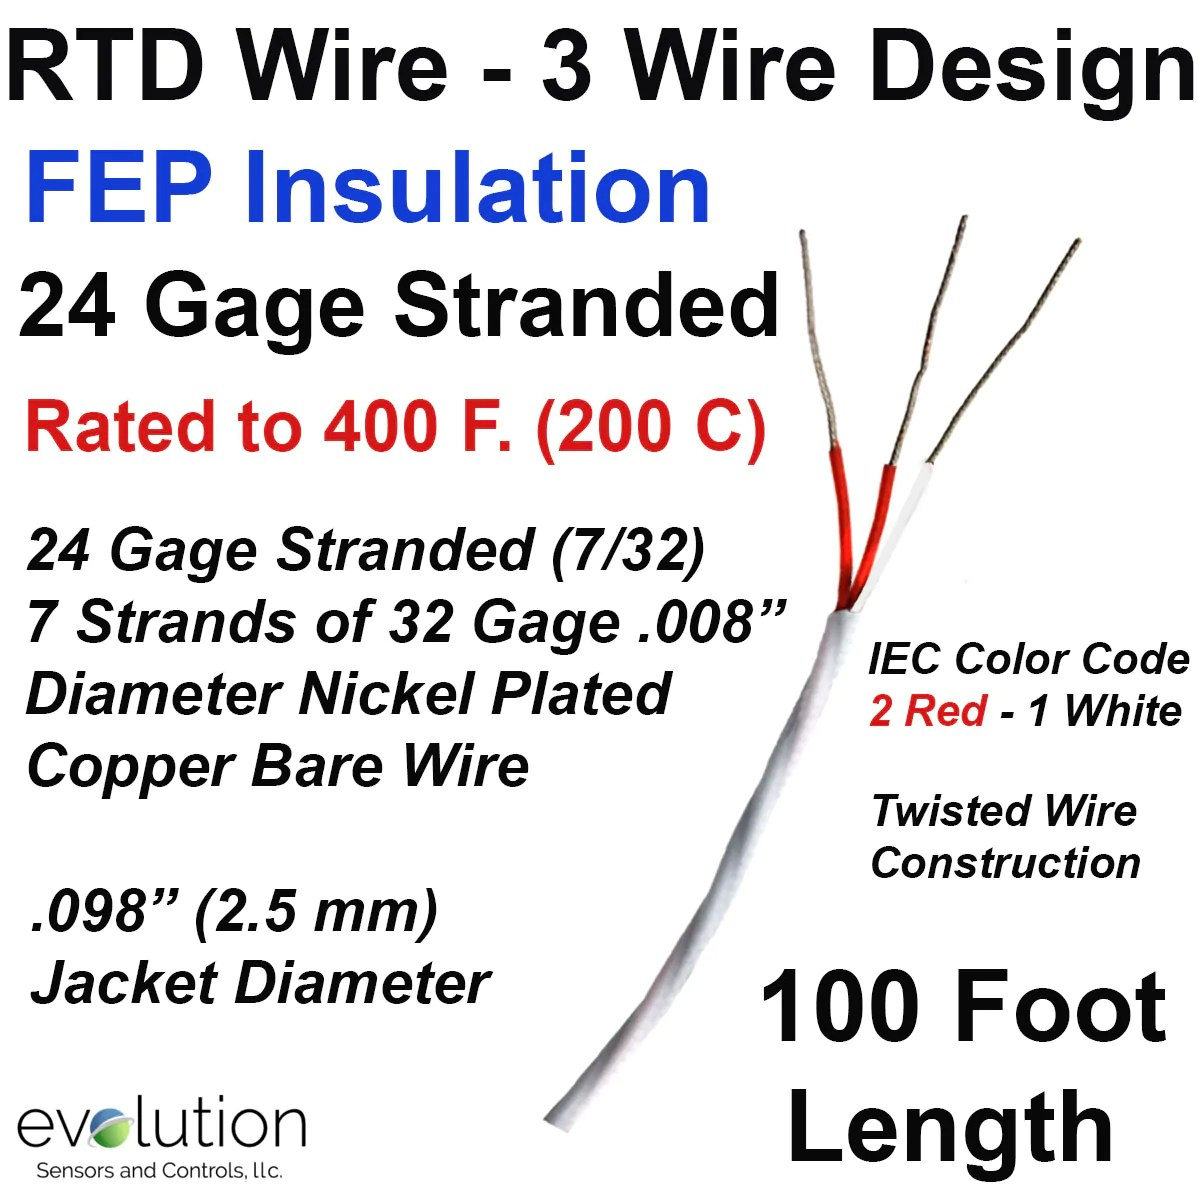 medium resolution of rtd wiring color code wiring diagram inside rtd 3 wire color code rtd wiring color code